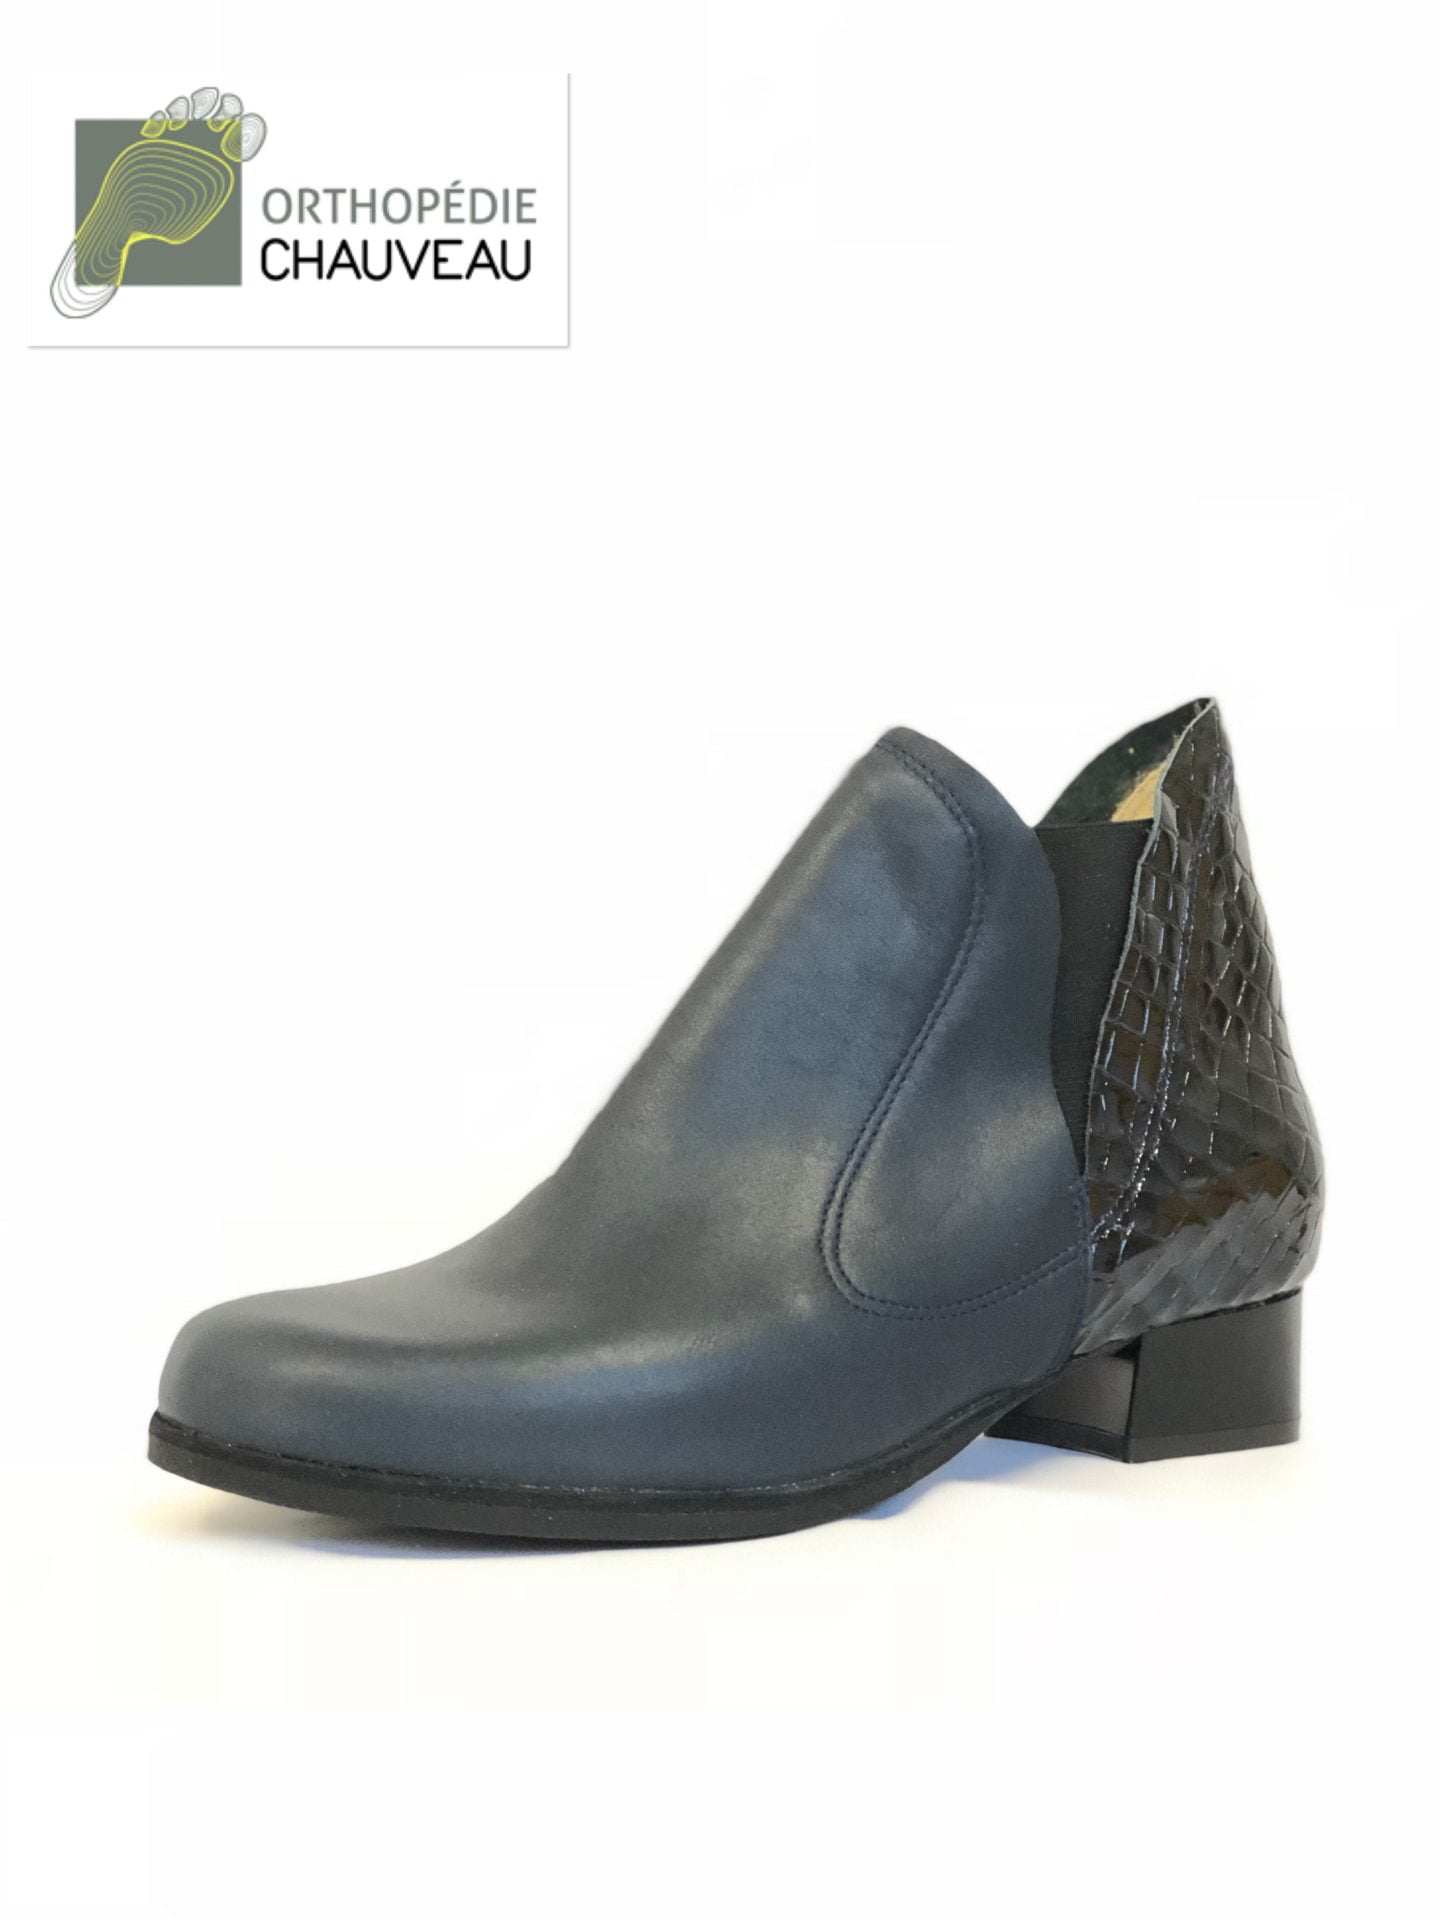 chaussures orthopediques Rennes st malo bottine cuir